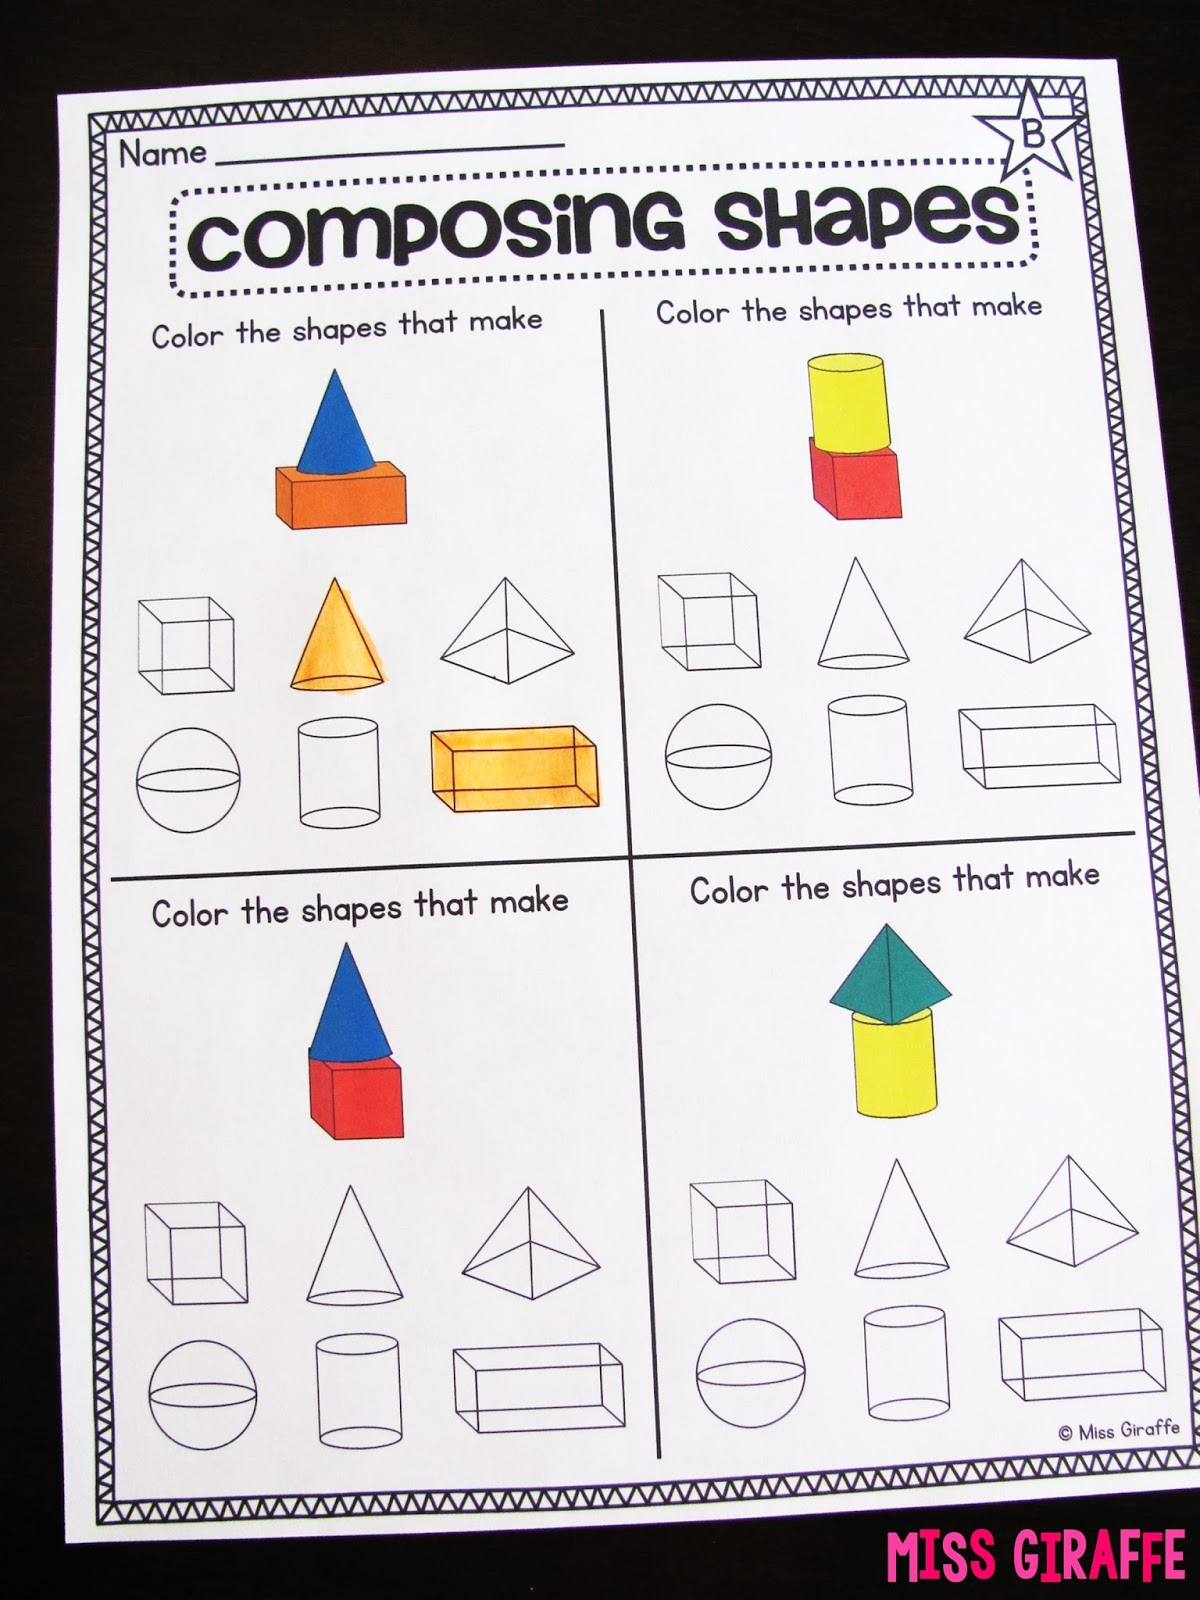 miss giraffe 39 s class composing shapes in 1st grade. Black Bedroom Furniture Sets. Home Design Ideas